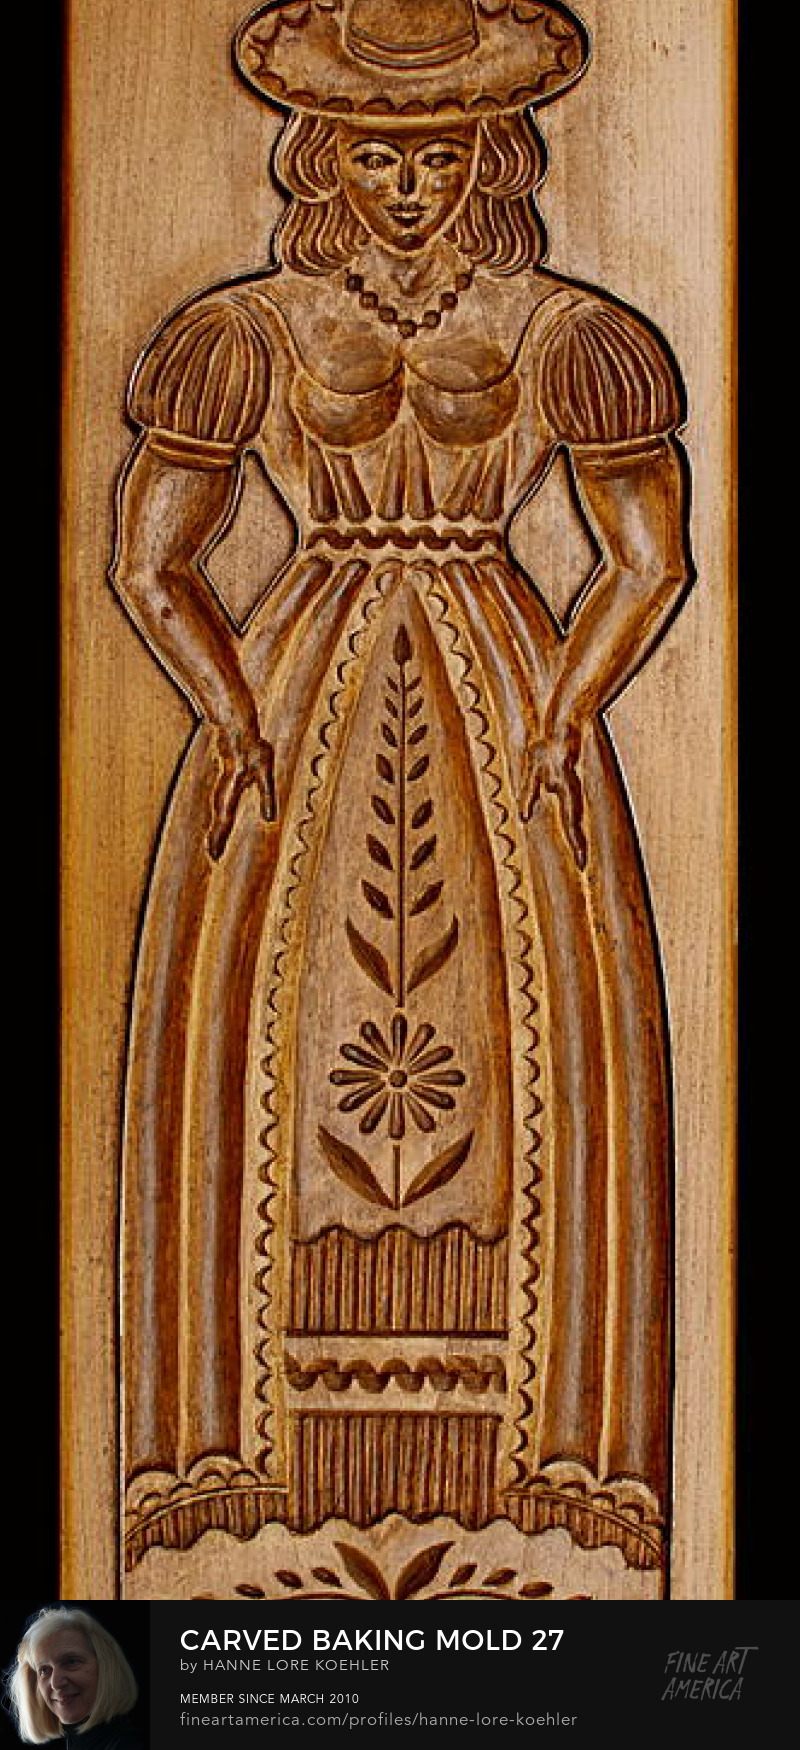 Art Prints of hand-carved wood Gingerbread Woman Cookie mold